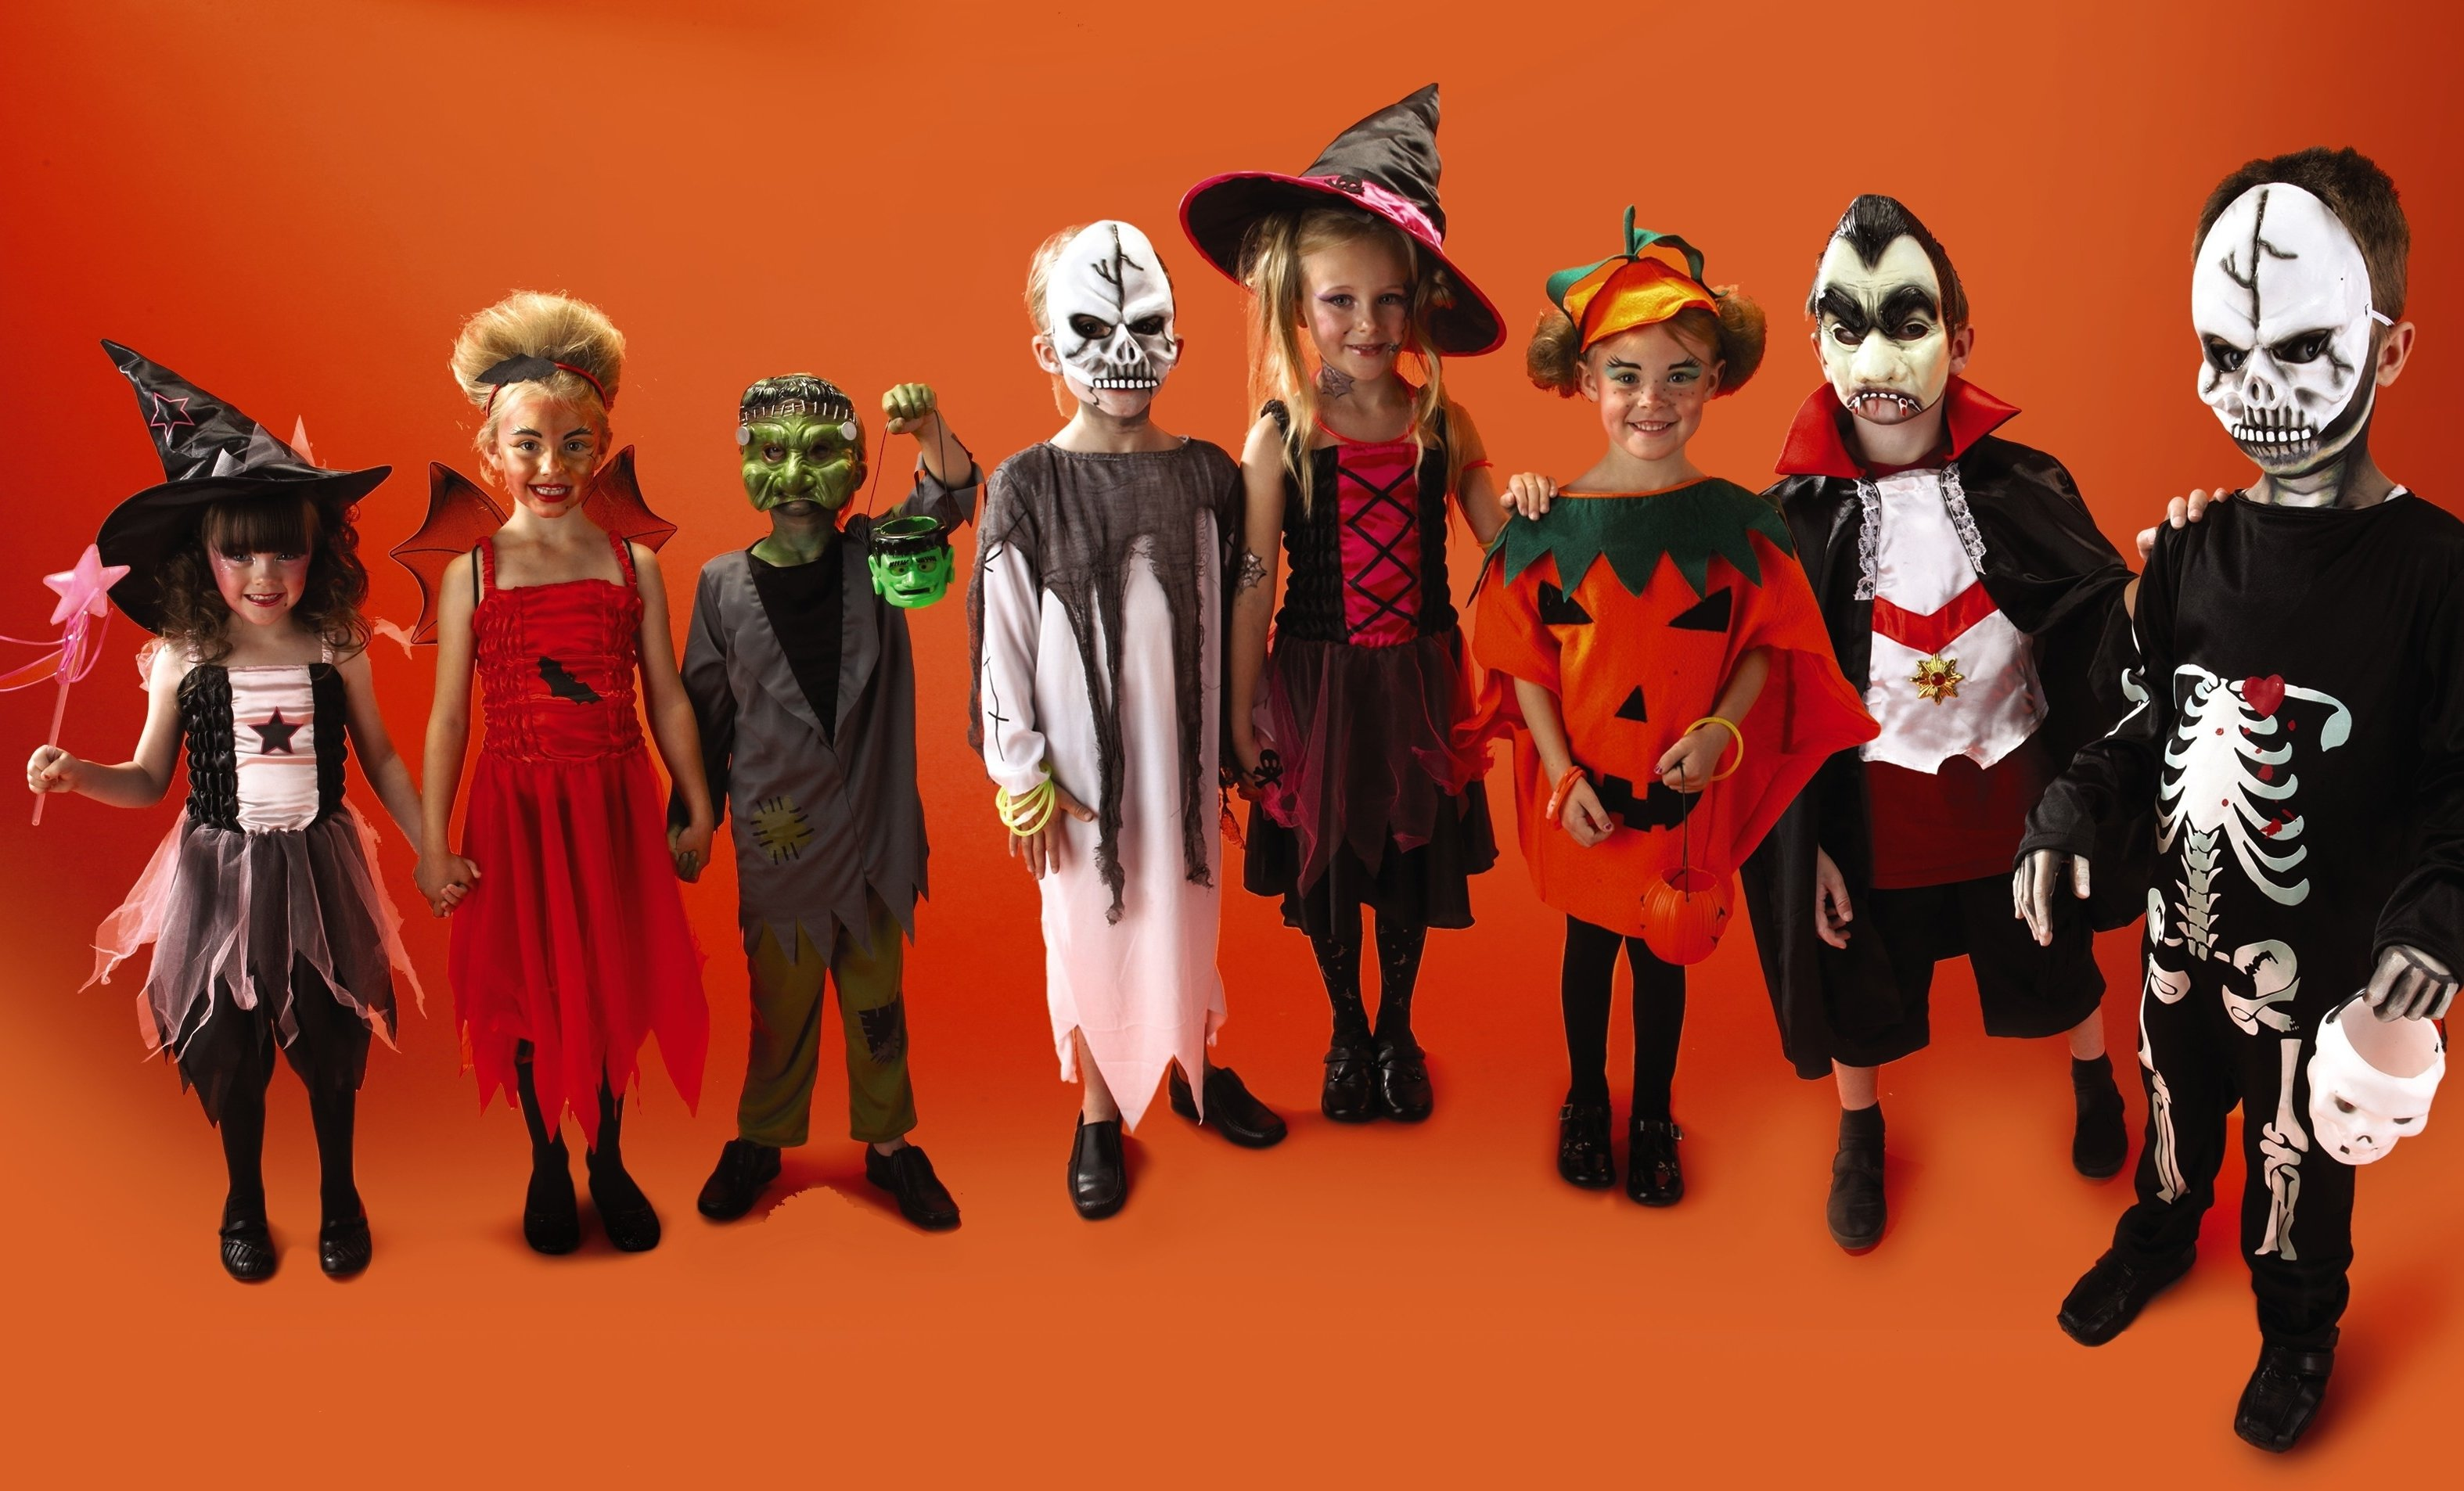 10 Fashionable Halloween Costume Ideas For Kids 7 childrens halloween costume ideas lakeside collection blog 2